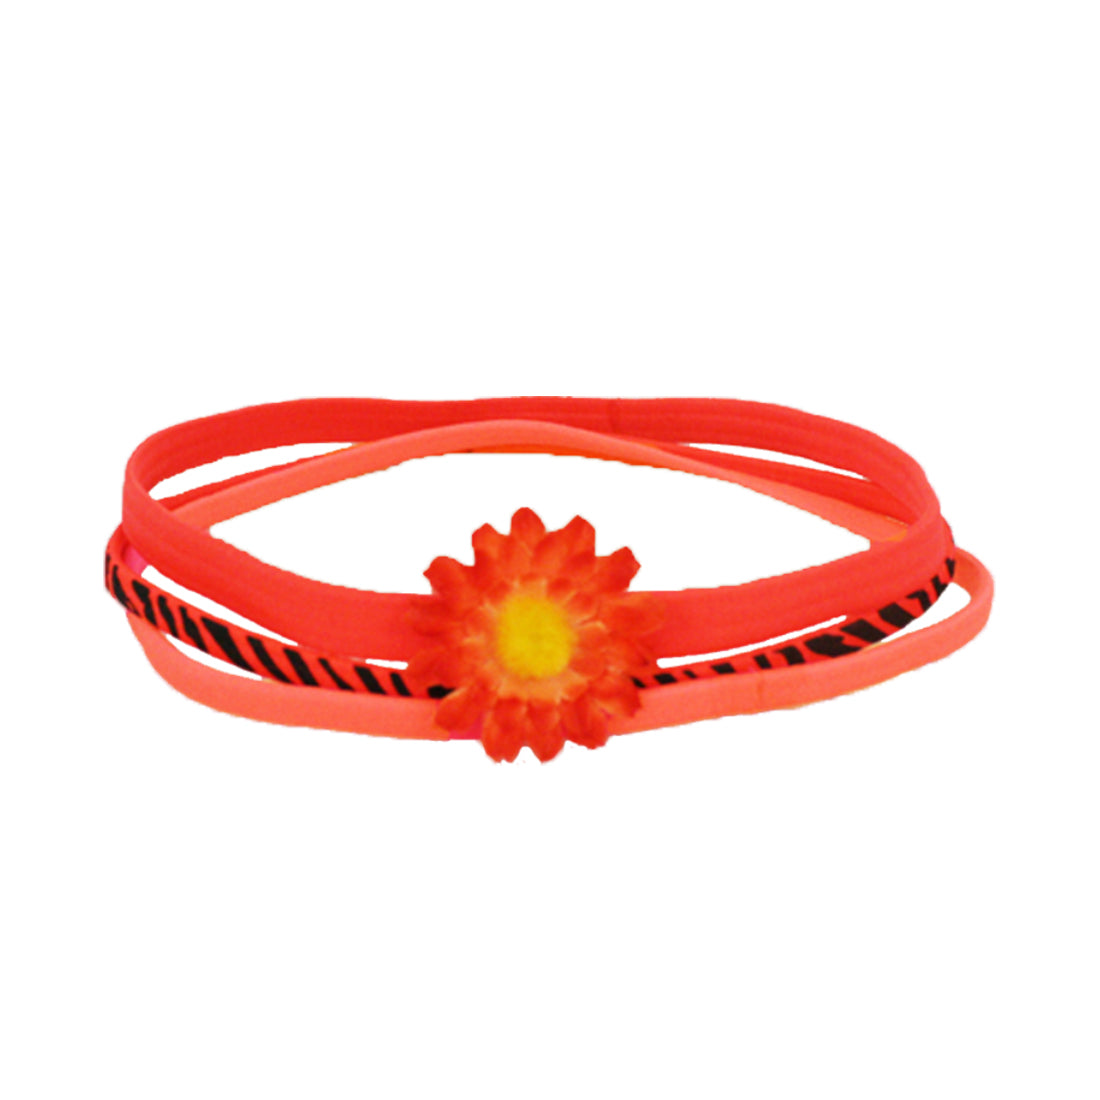 Bra Strap Headband - Orange, Zebra, Flower